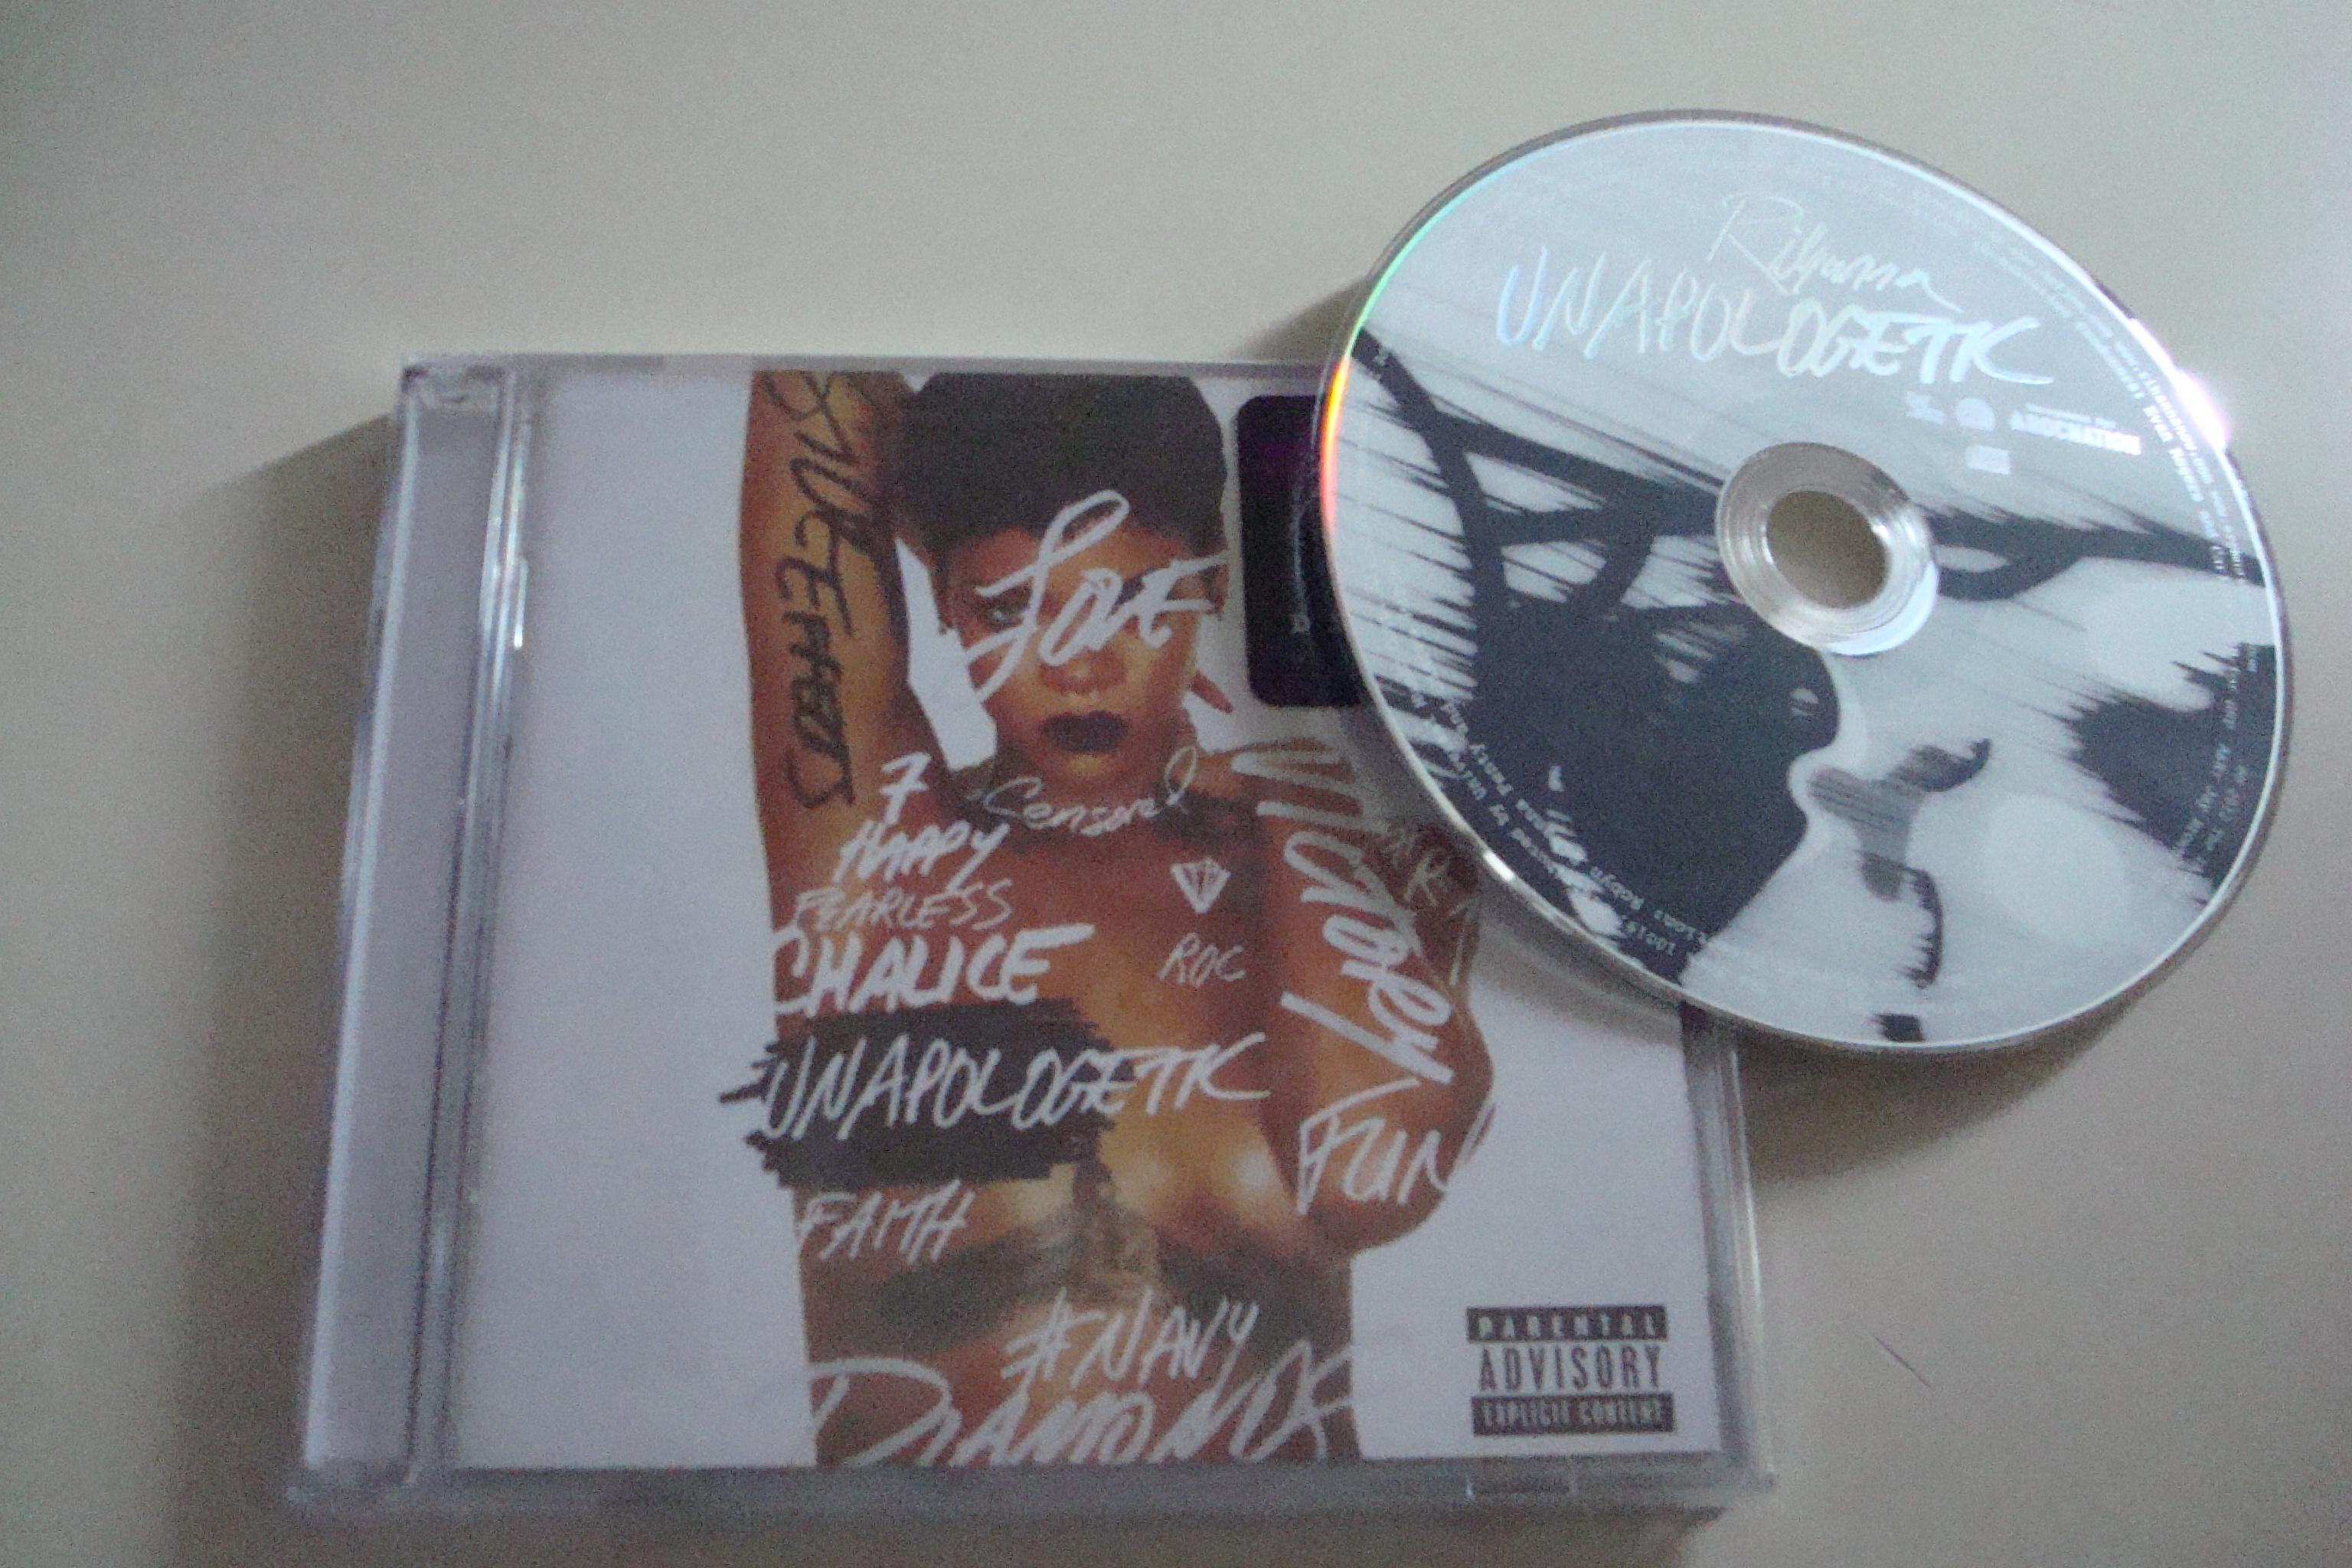 Rihanna Unapologetic 2012 Торрент